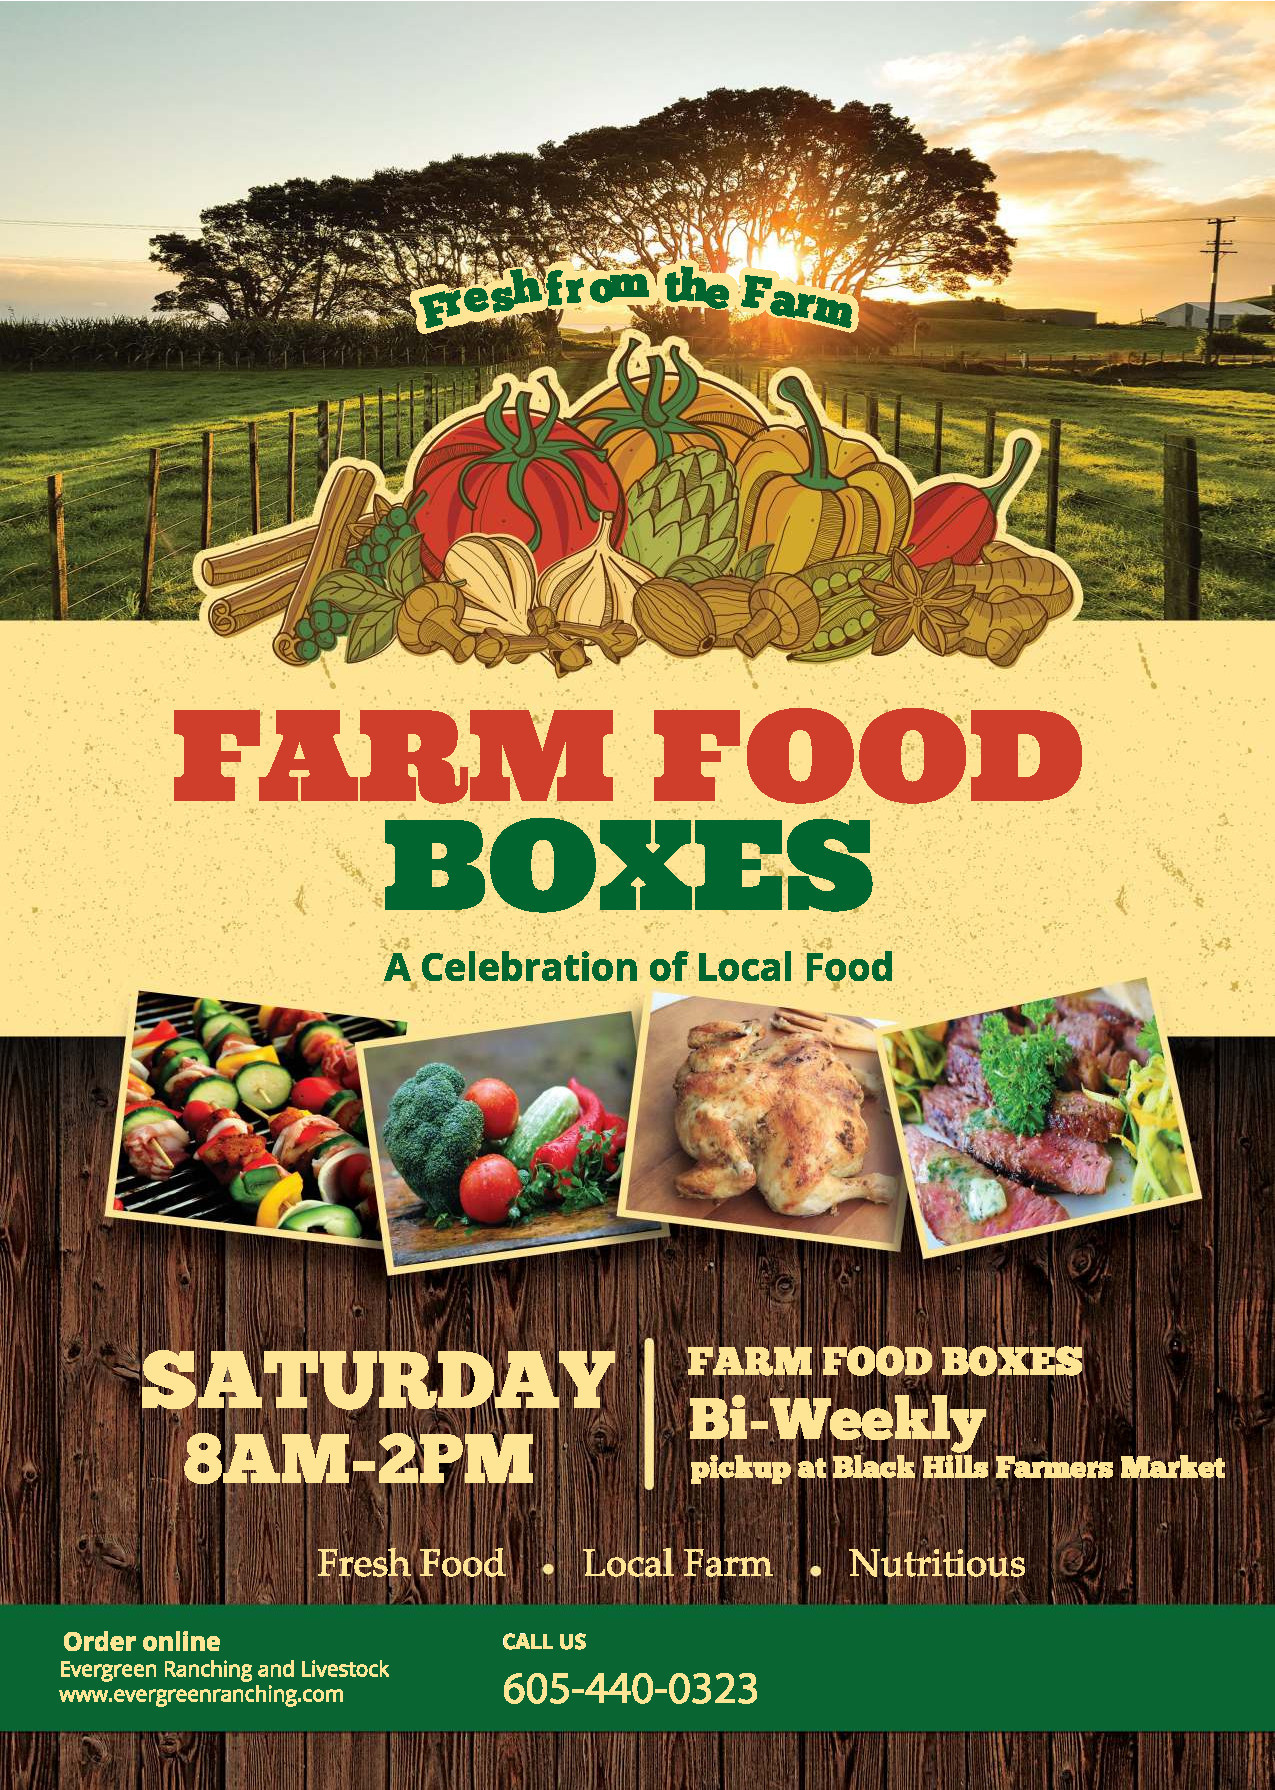 Farm Fresh Food Box/Bag